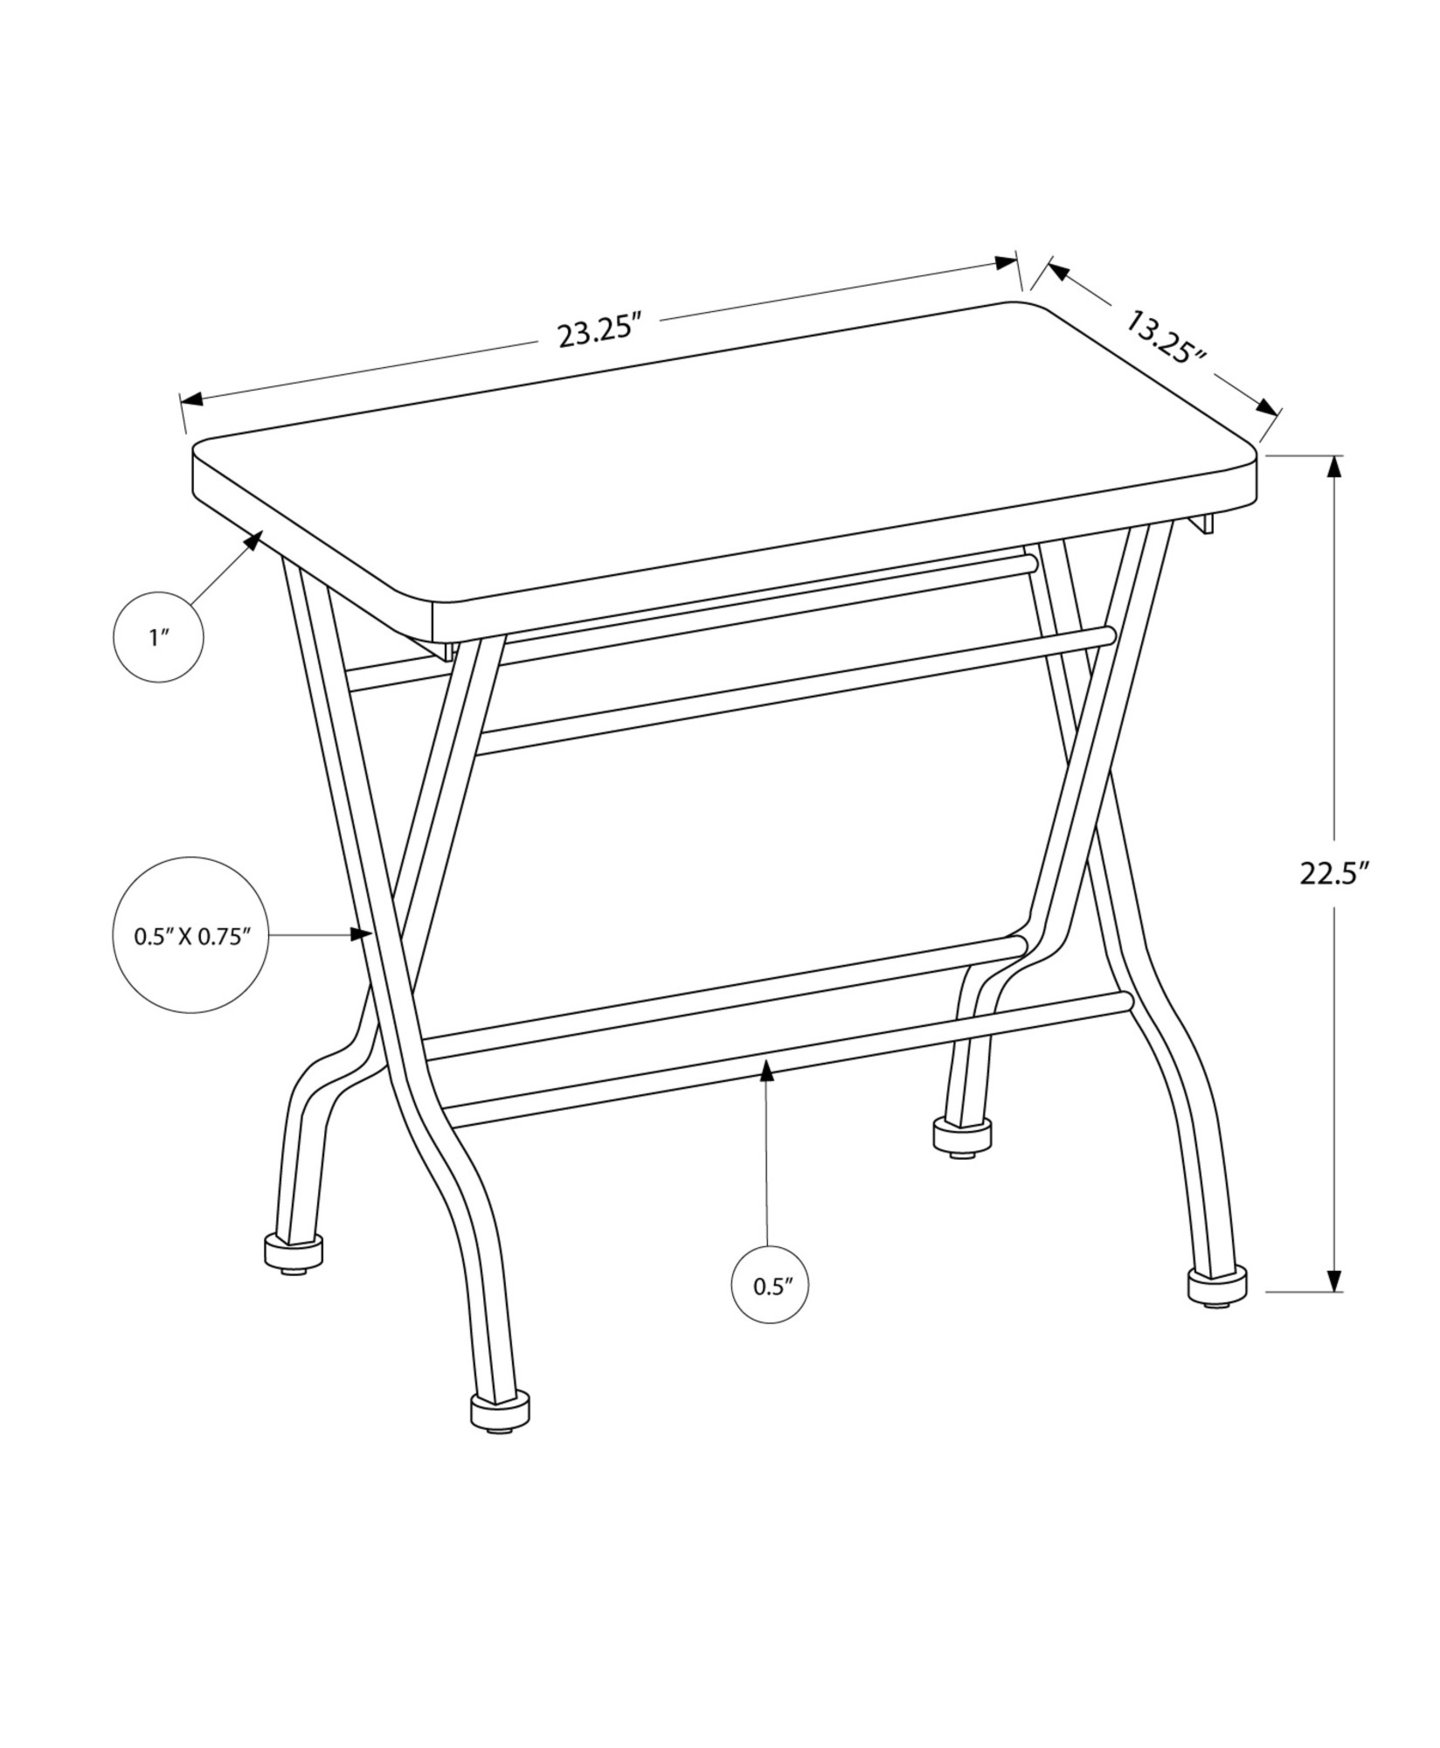 candace basil furniture accent table cherry charcoal black metal folding dale tiffany hand painted lamps west elm coat rack beer cooler coffee ikea bedroom cupboards white round